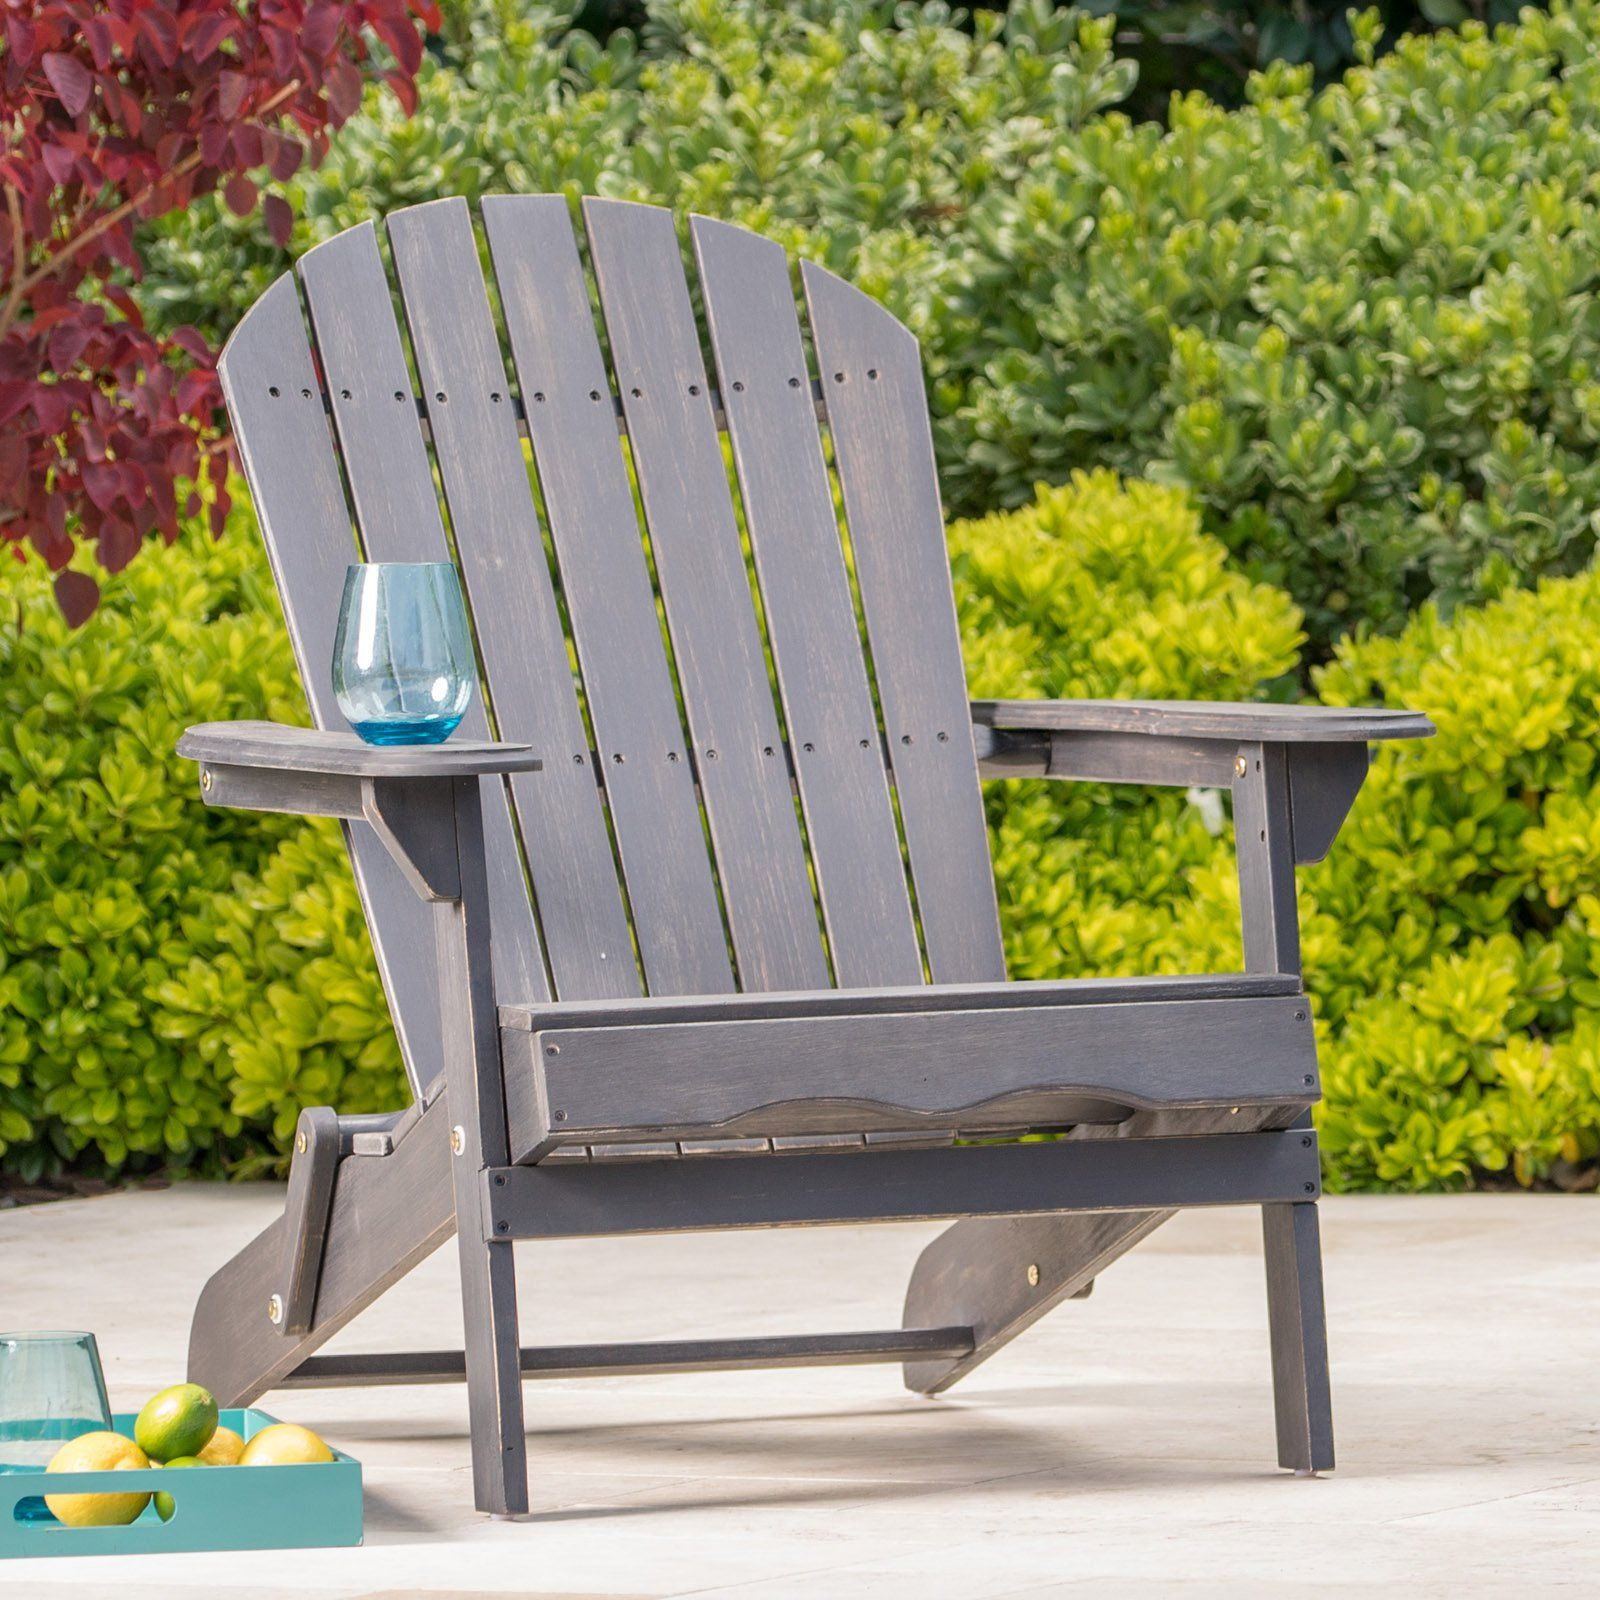 Outdoor Hanlee Folding Wood Adirondack Chair In 2019 Wood